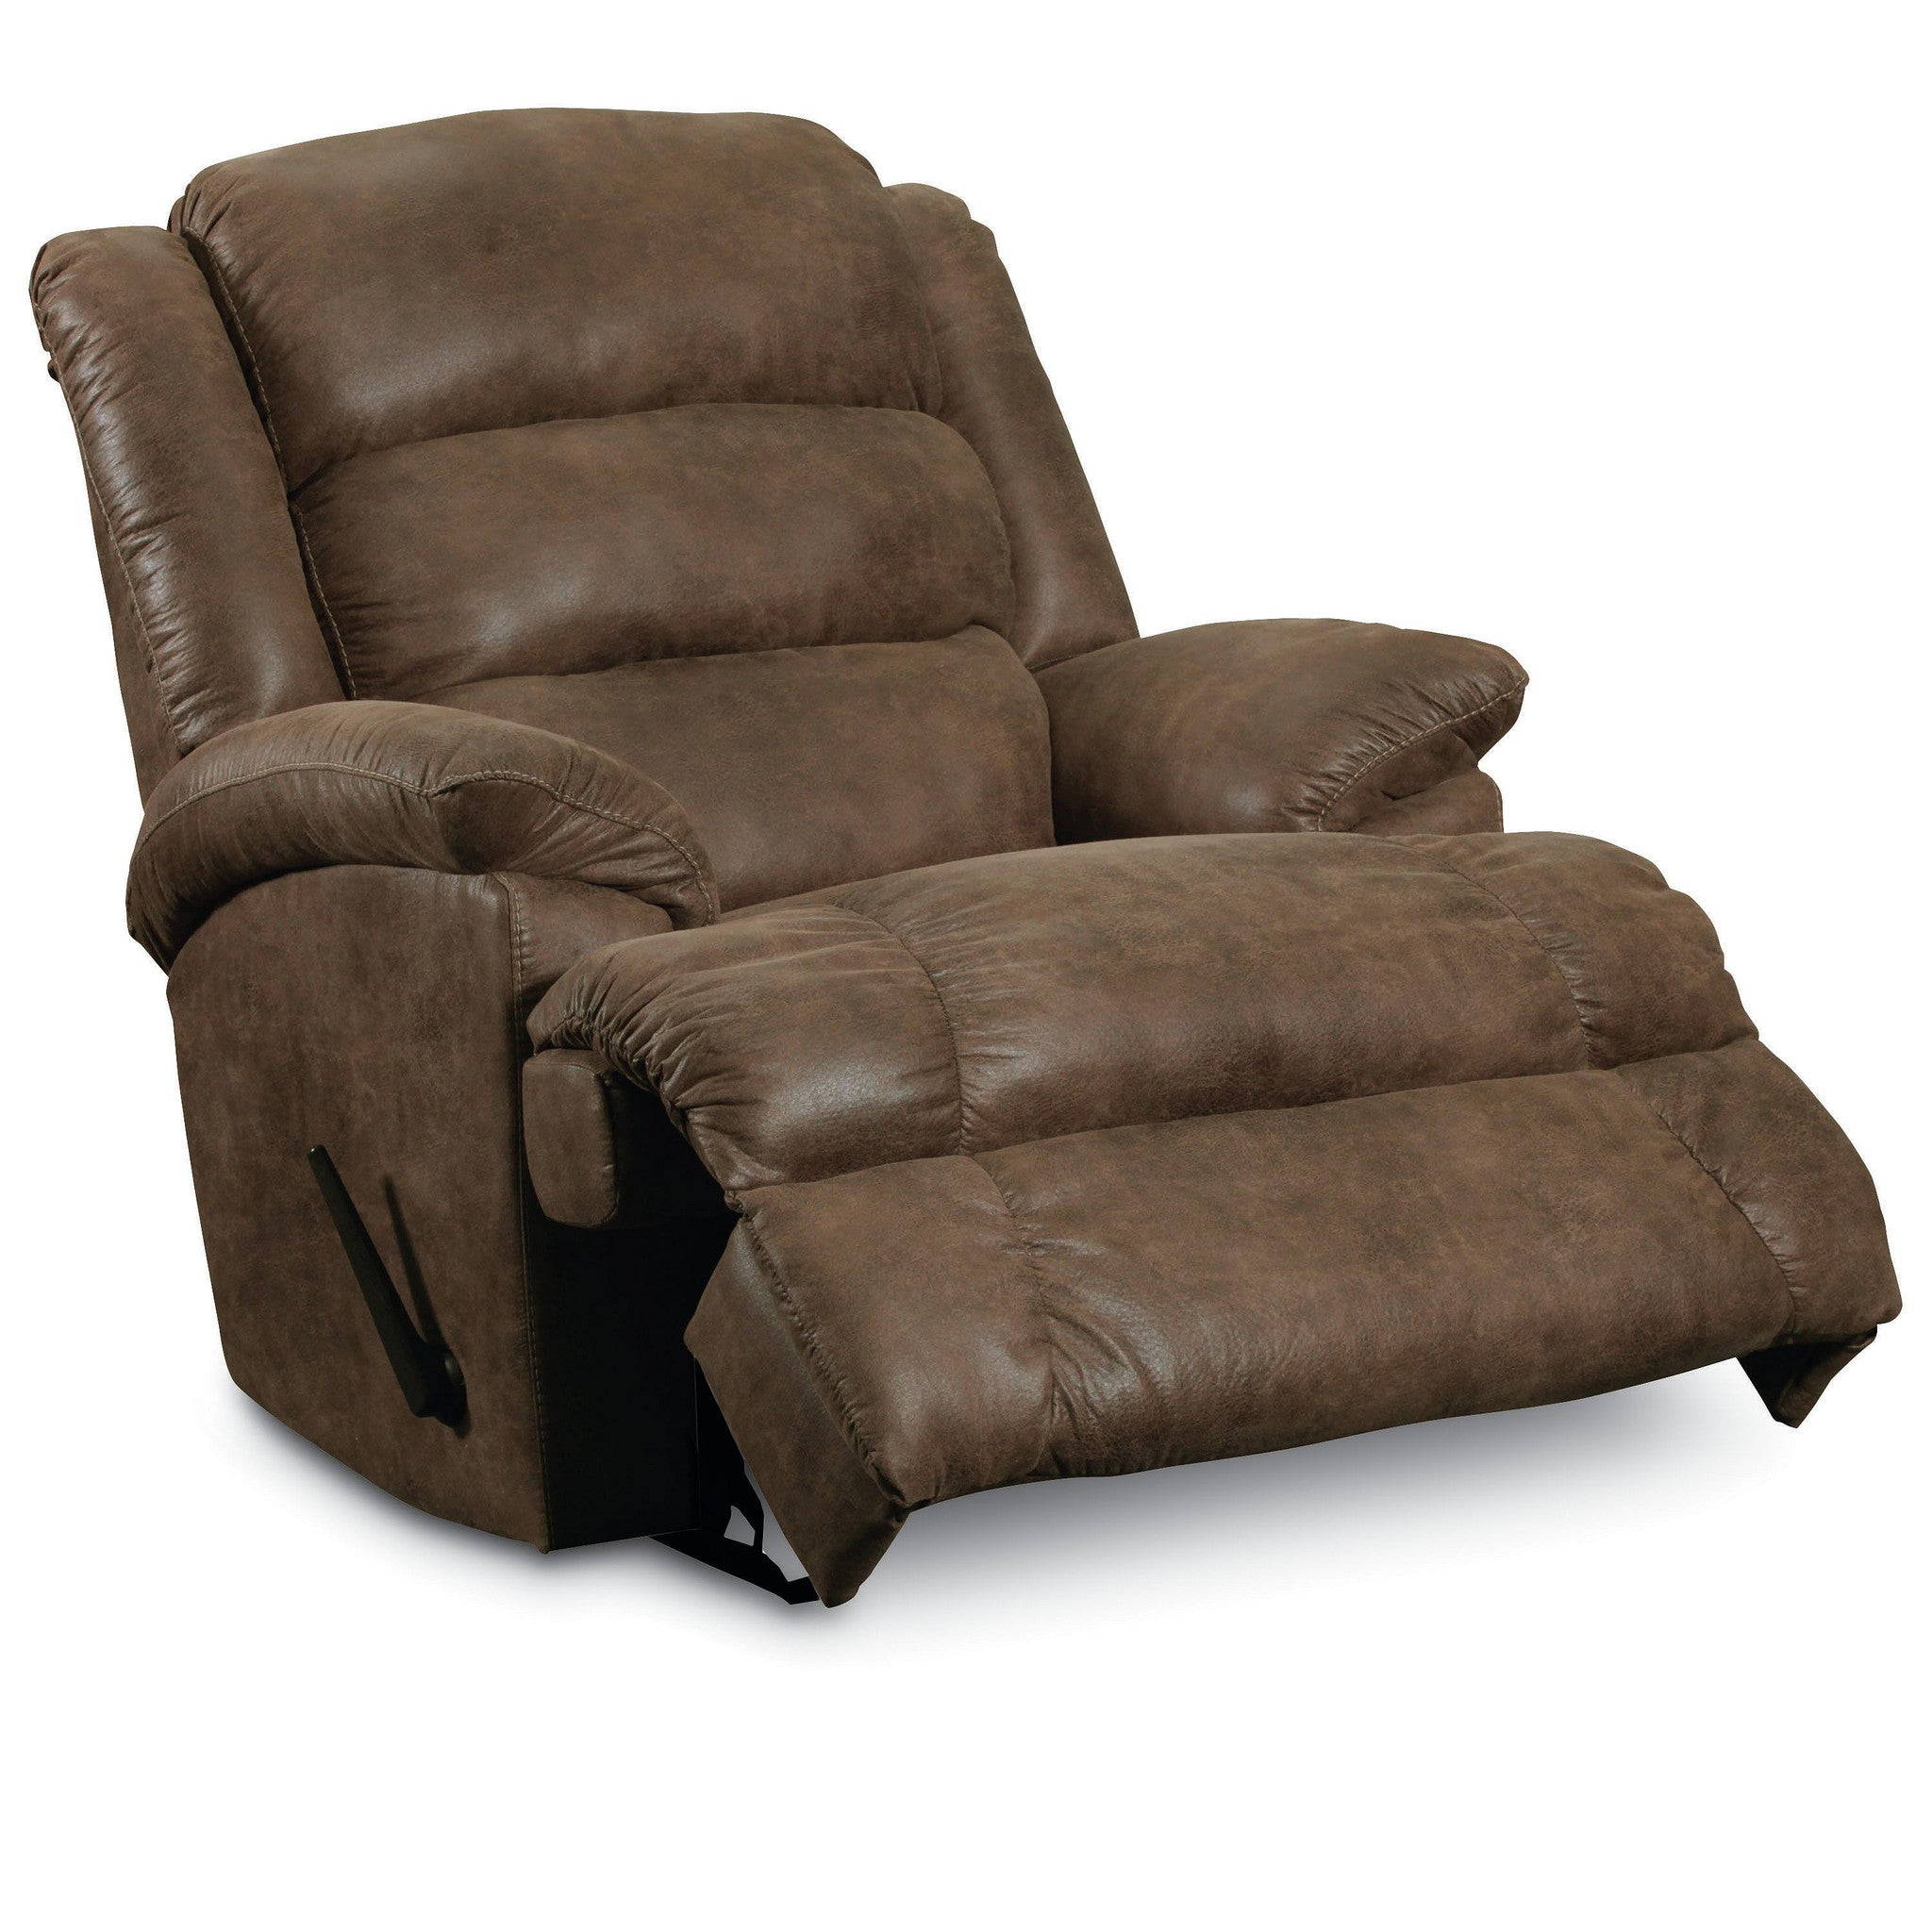 Lane Knox Recliner Extra Large Rocker Recliner Lift